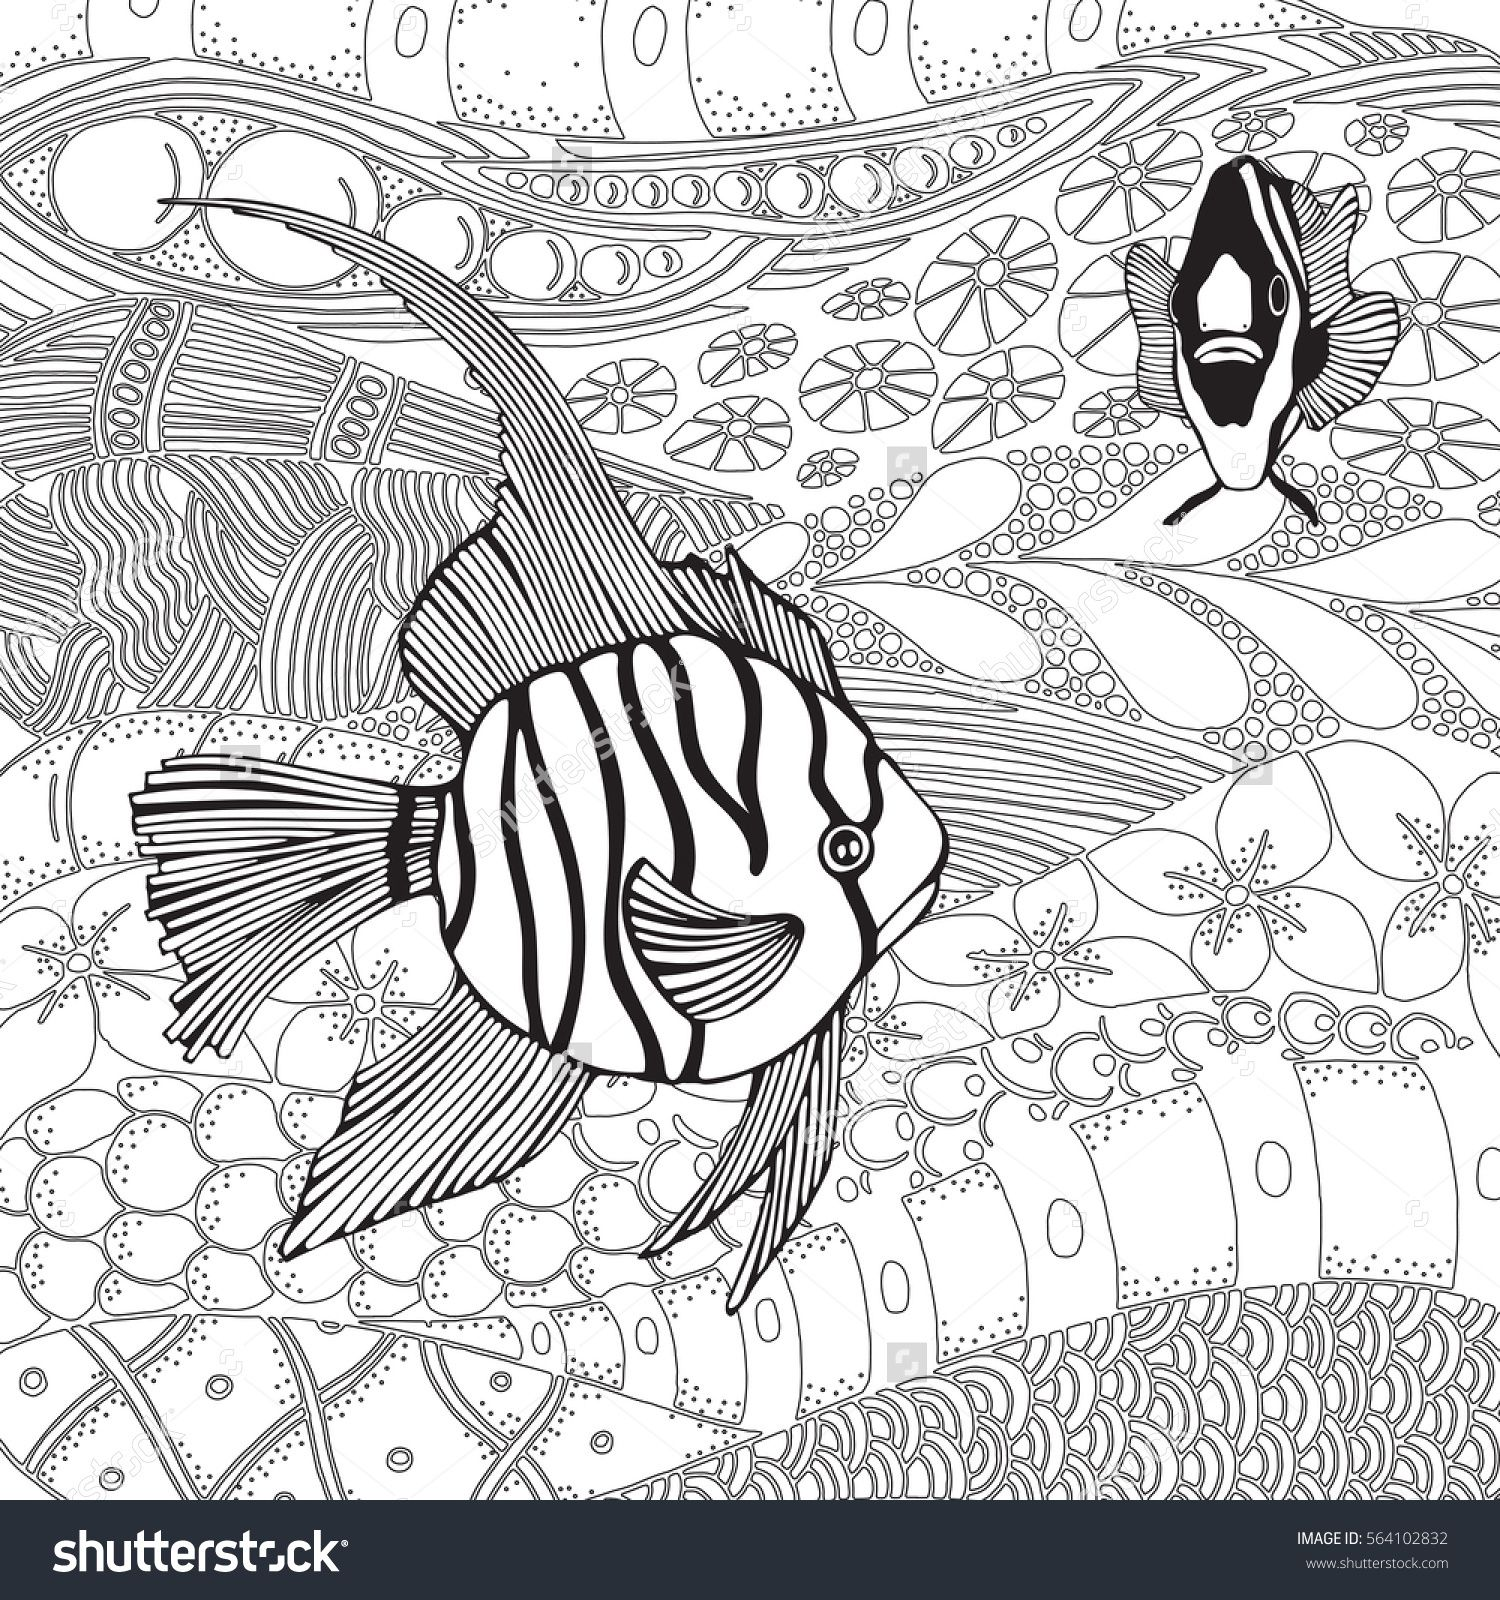 Black And White Tropical Fish Exotic Coloring Book Page For Adult Monochrome